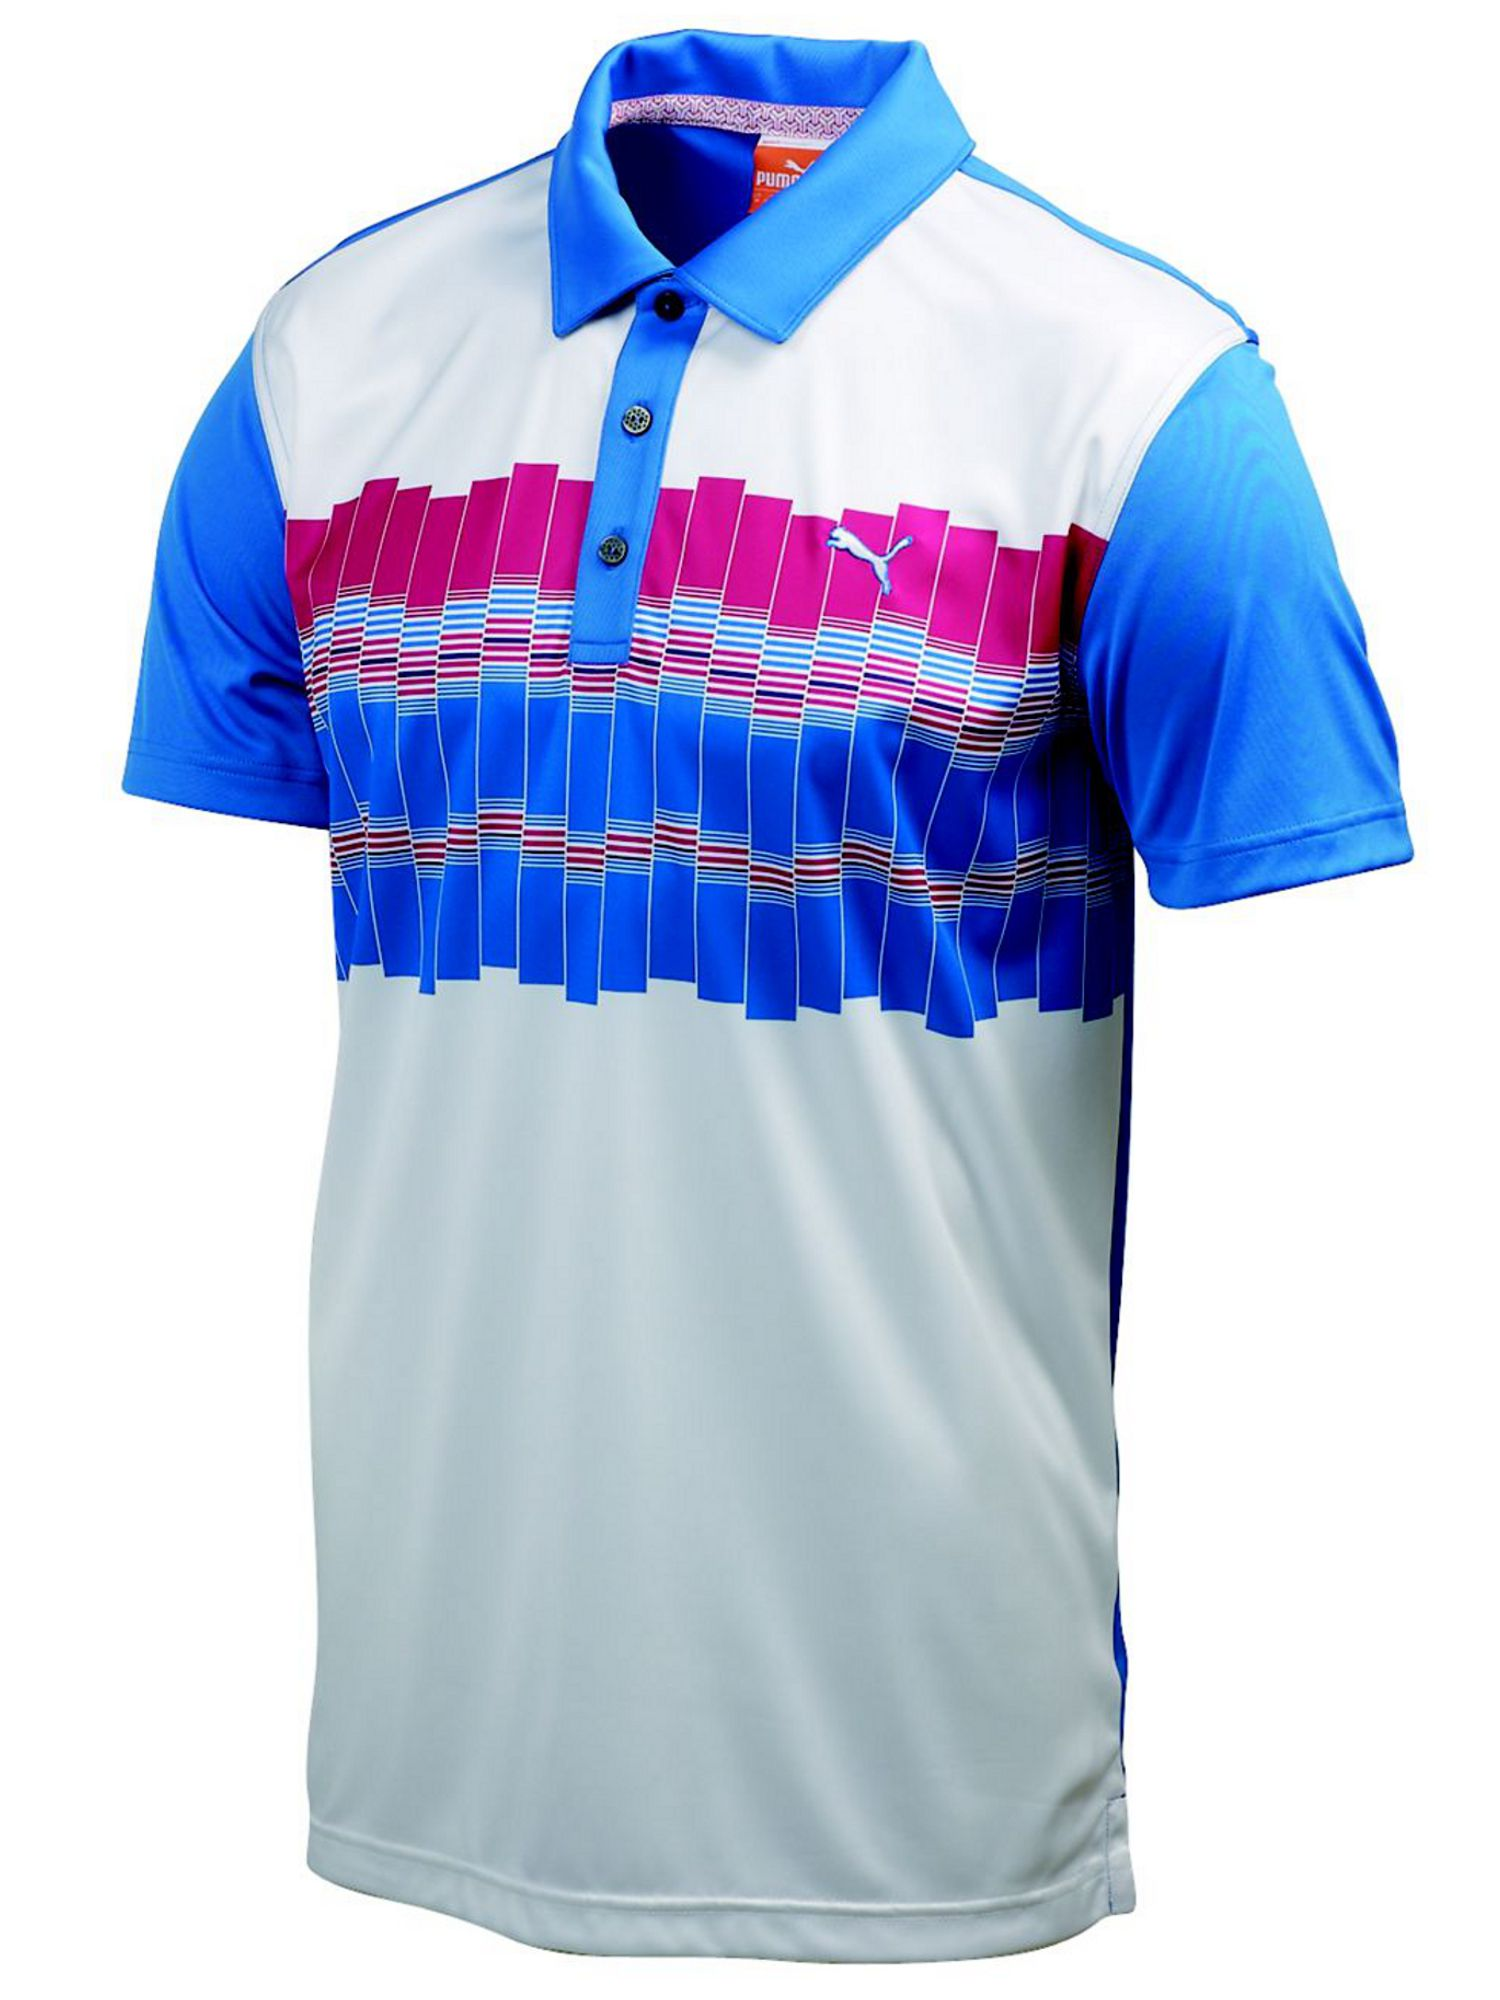 Graphic tech polo